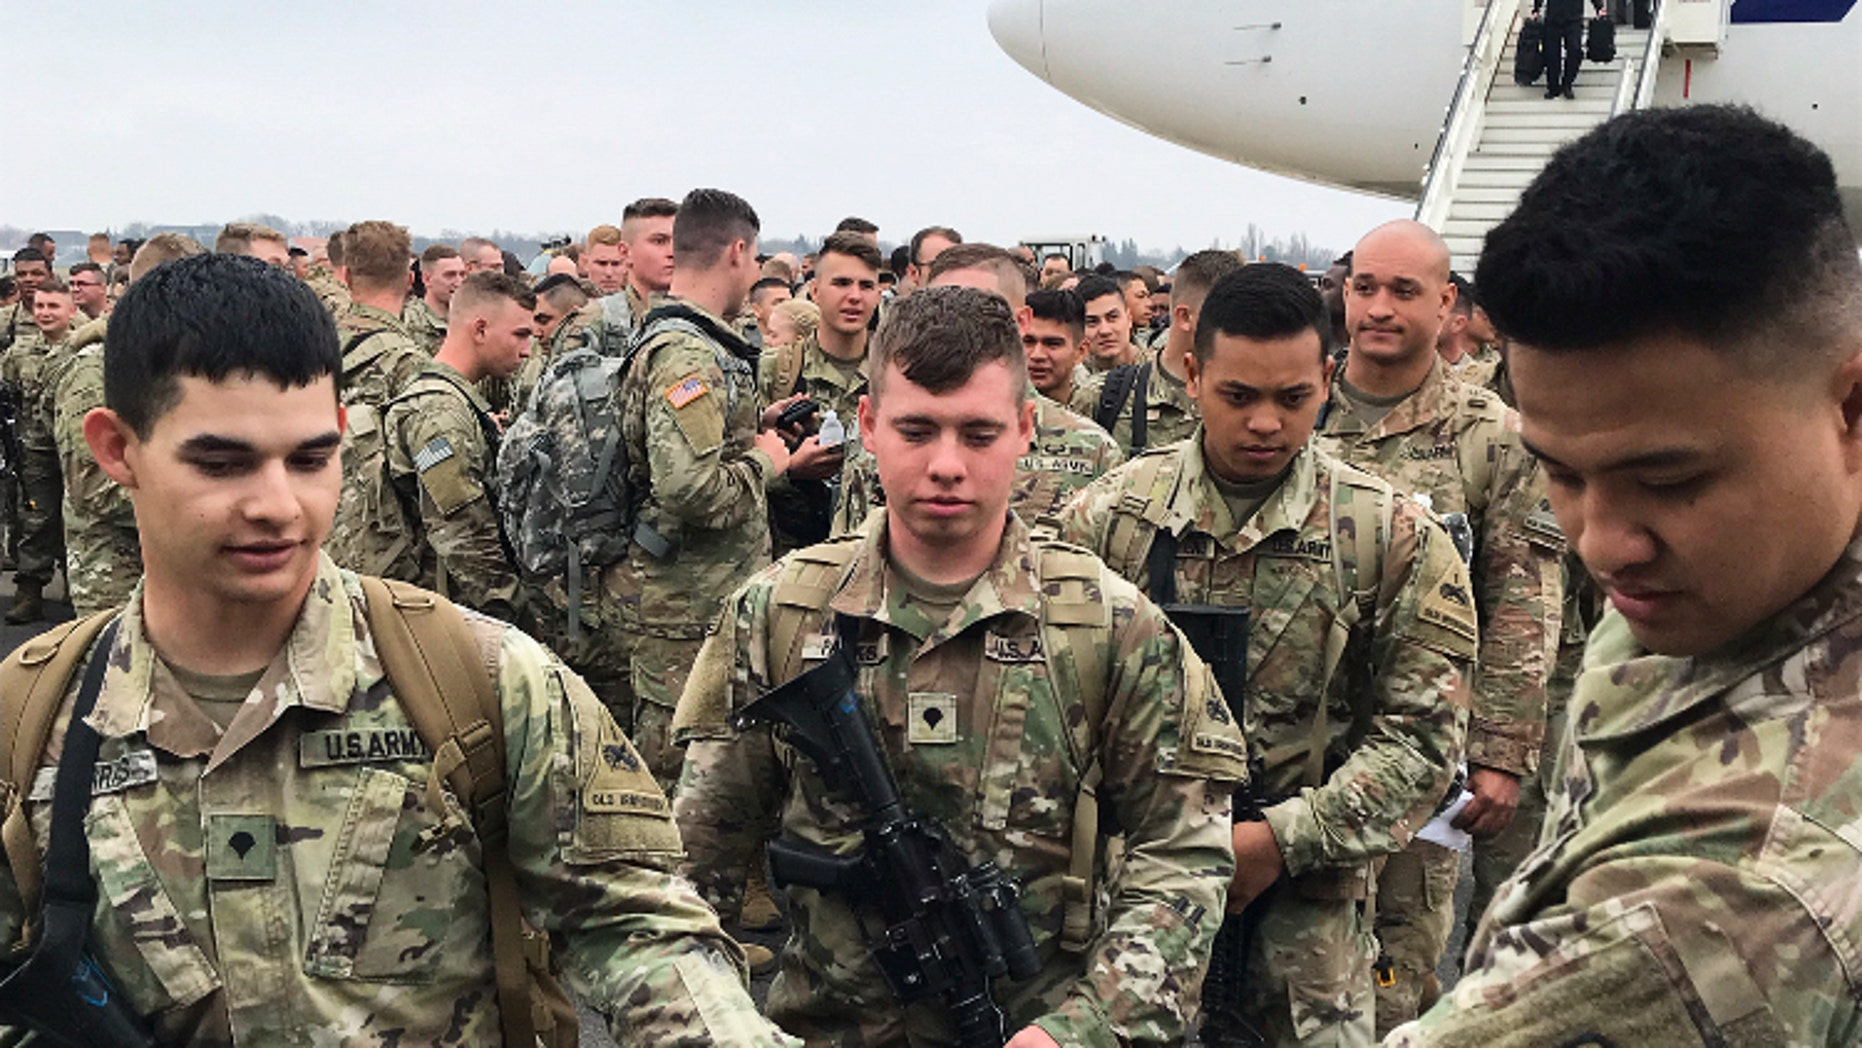 Soldiers from the 1st Armored Division, based in Fort Bliss, Texas, arrives at the airport Tegel in Berlin, Thursday, March 21, 2019. Over three hundred soldiers have arrived in Germany from their base in Texas in the first test of a new American strategy to rapidly deploy troops based in the United States to Europe to bolster the NATO deterrent against possible Russian aggression. (AP Photo/Dorothee Thiesing)